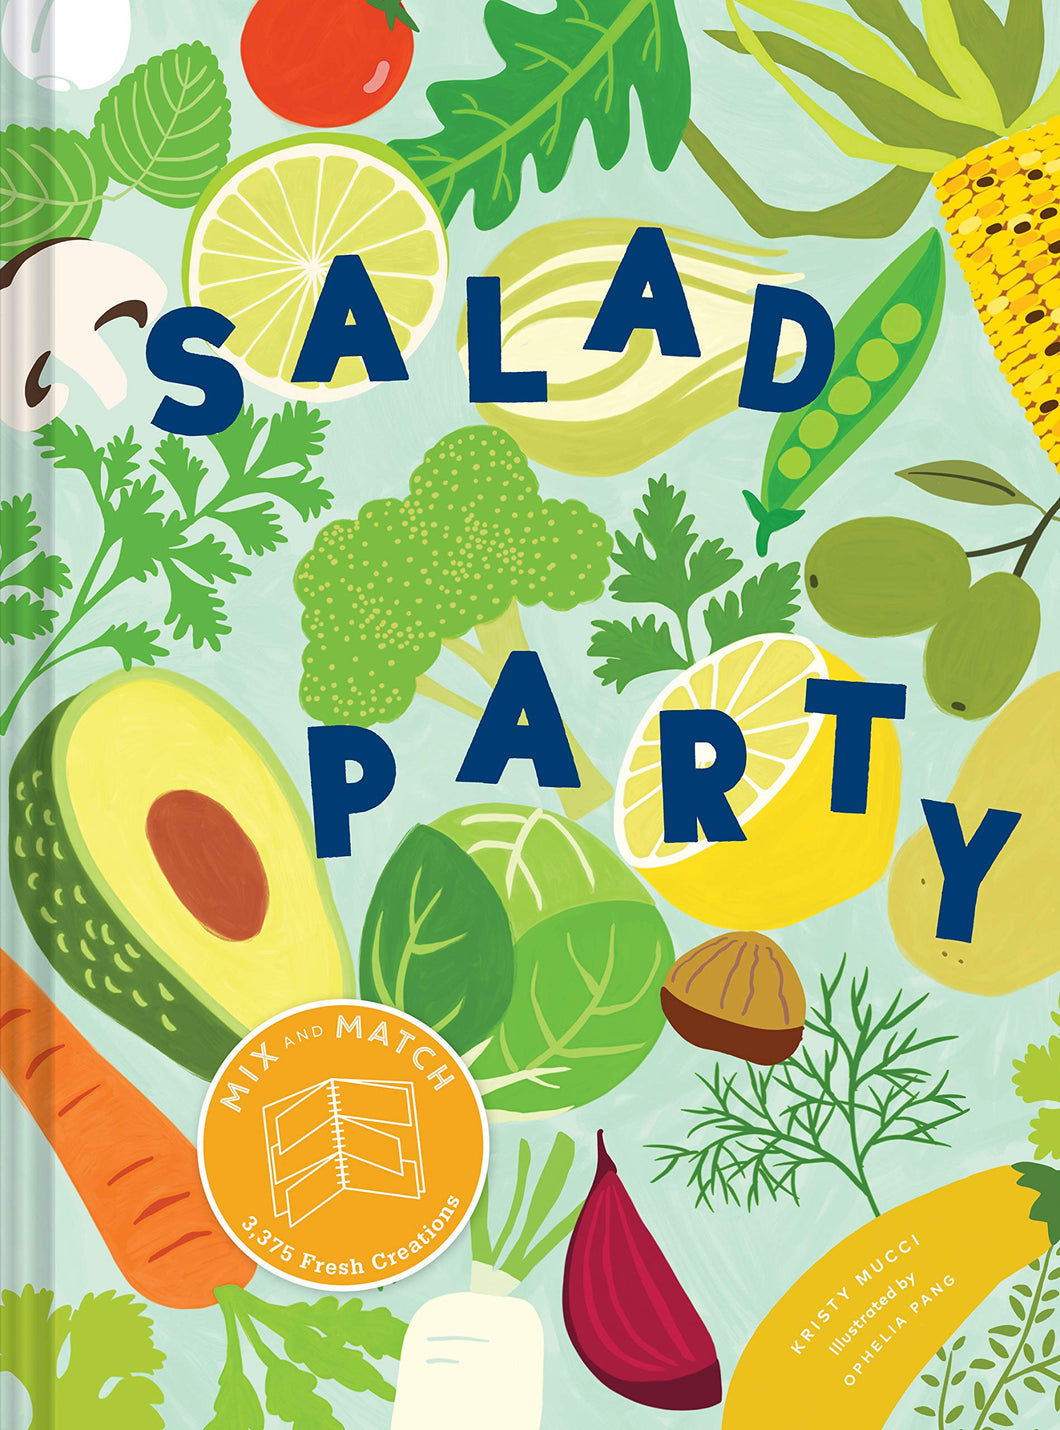 Salad Party the Cookbook